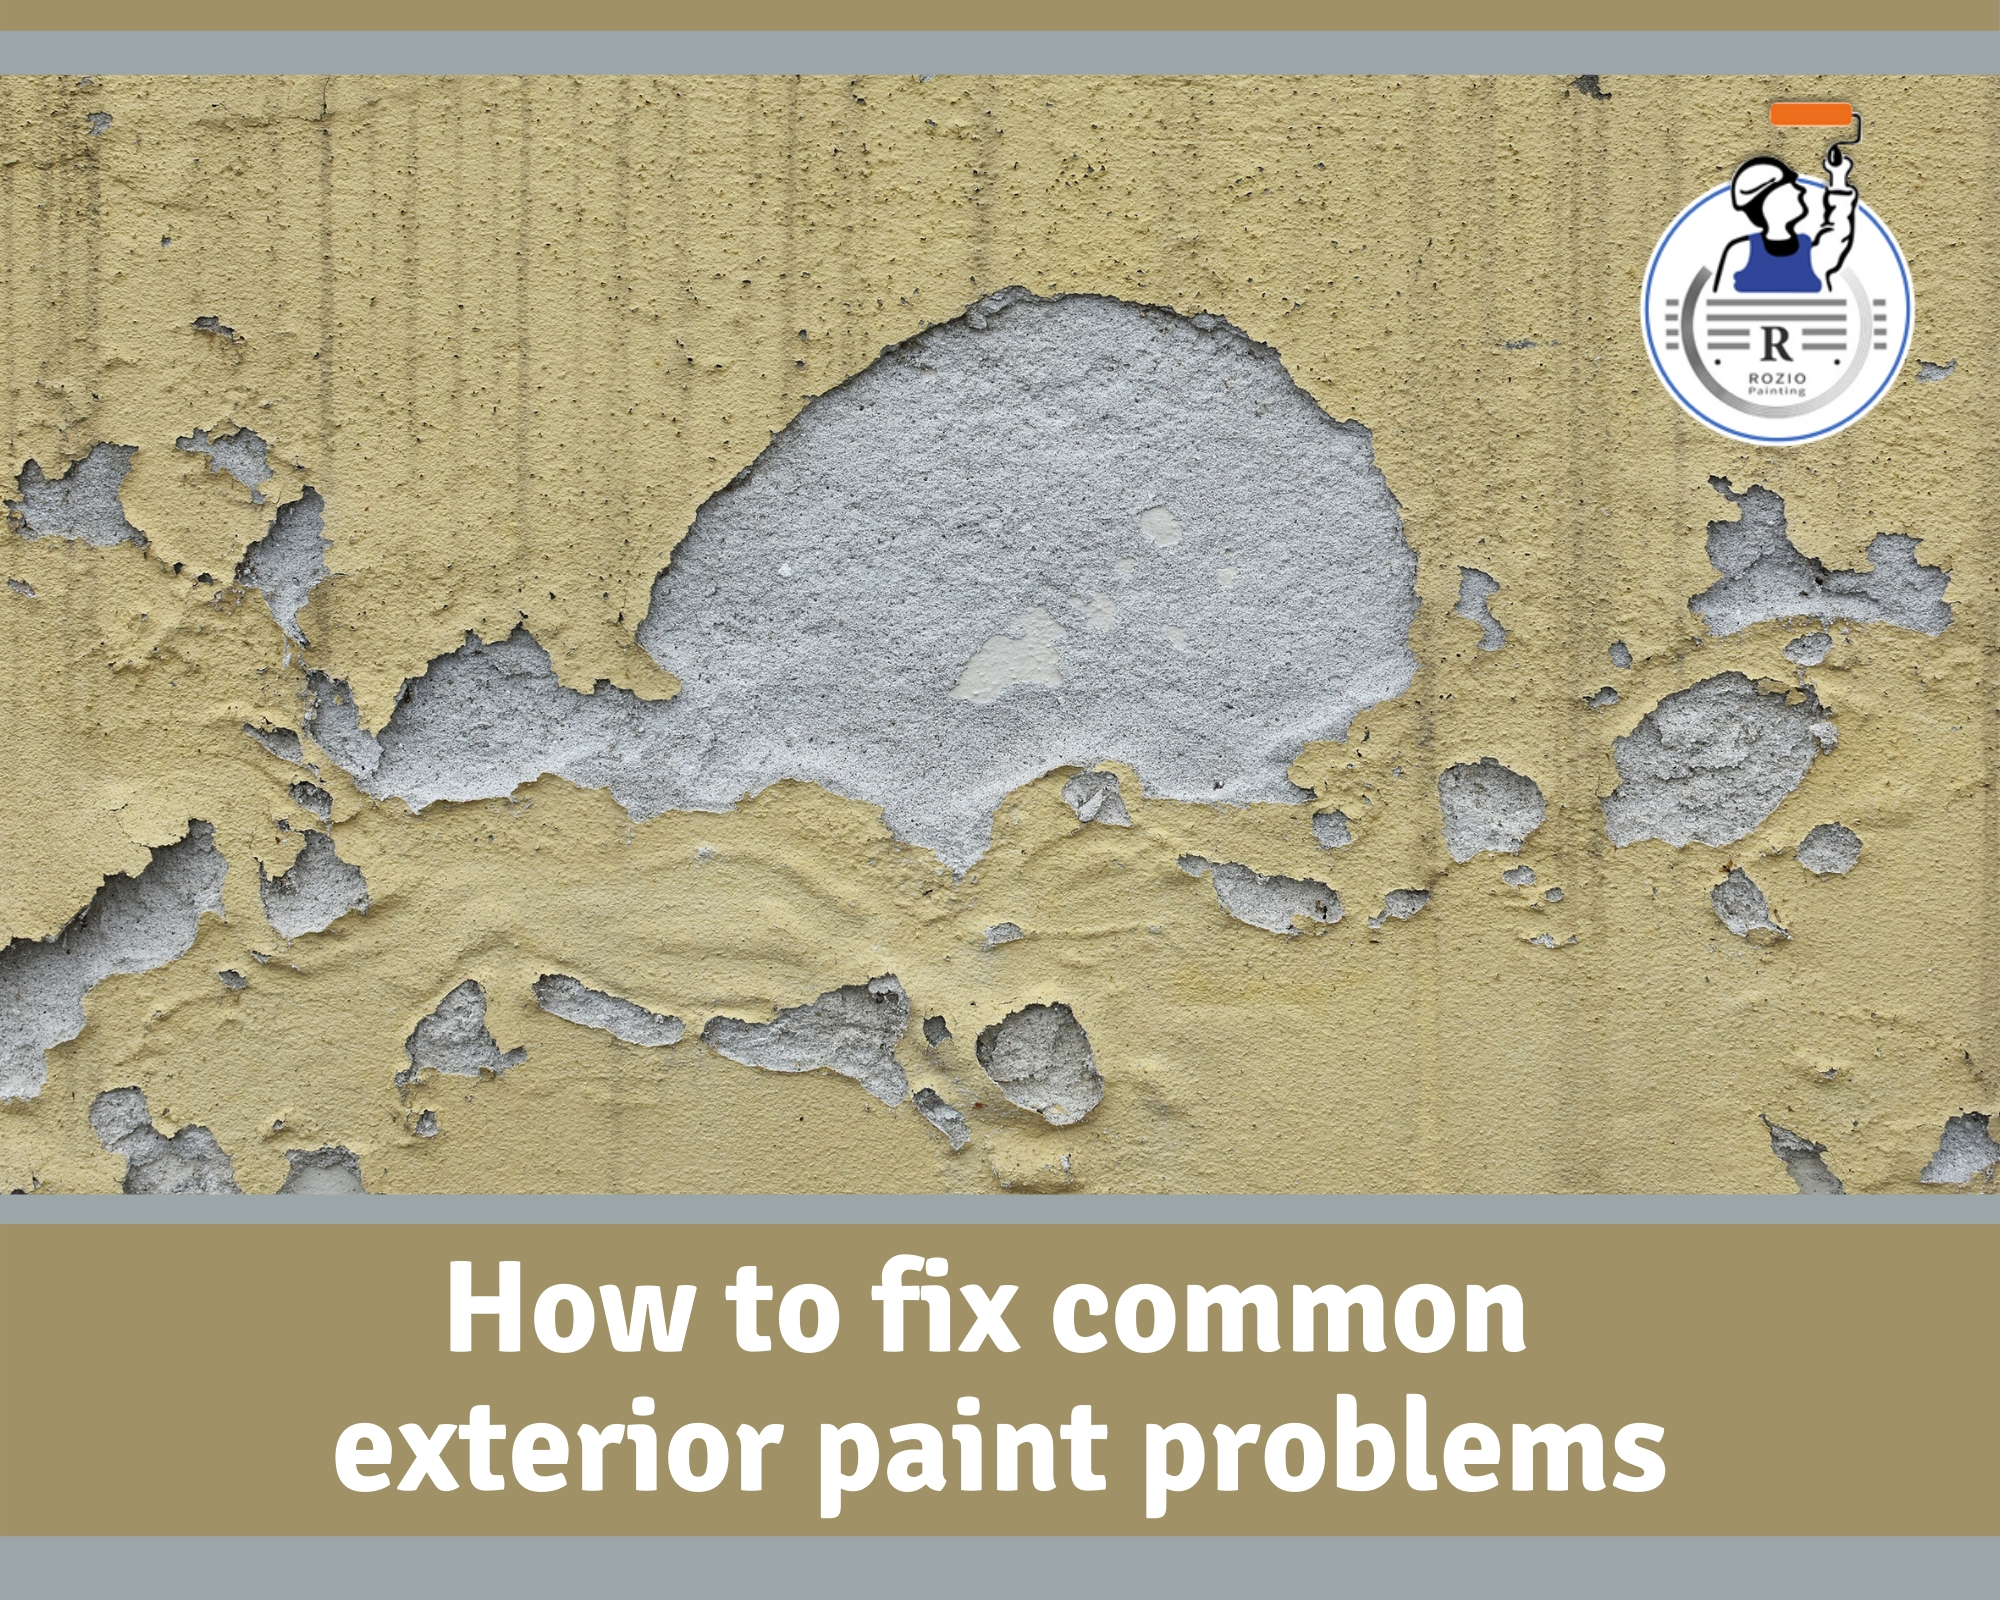 How to Fix Common Exterior Paint Problems